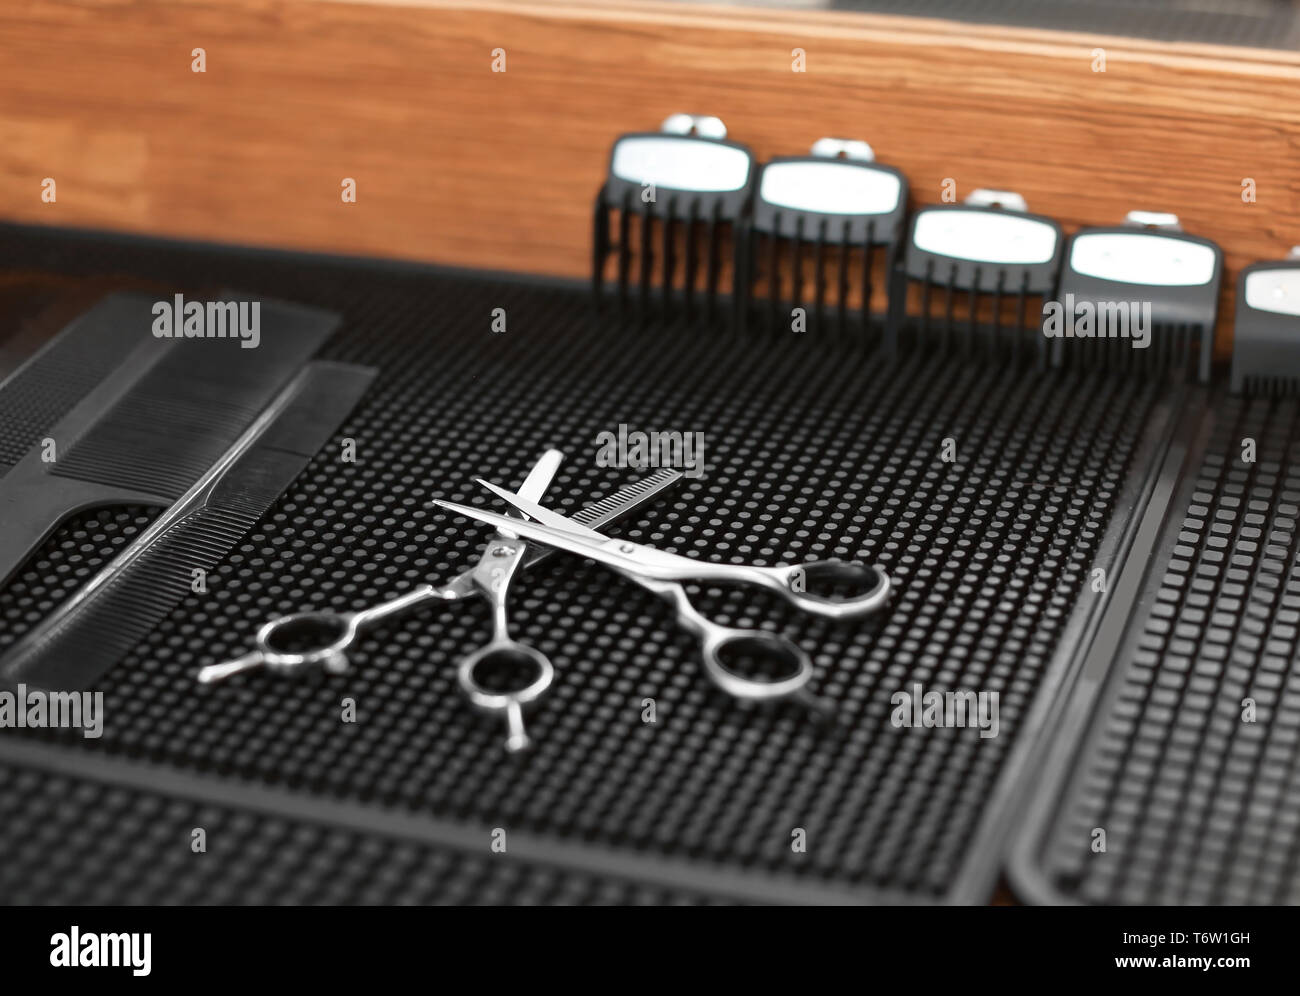 Trimmer attachment and scissors on table in hairdressing salon - Stock Image